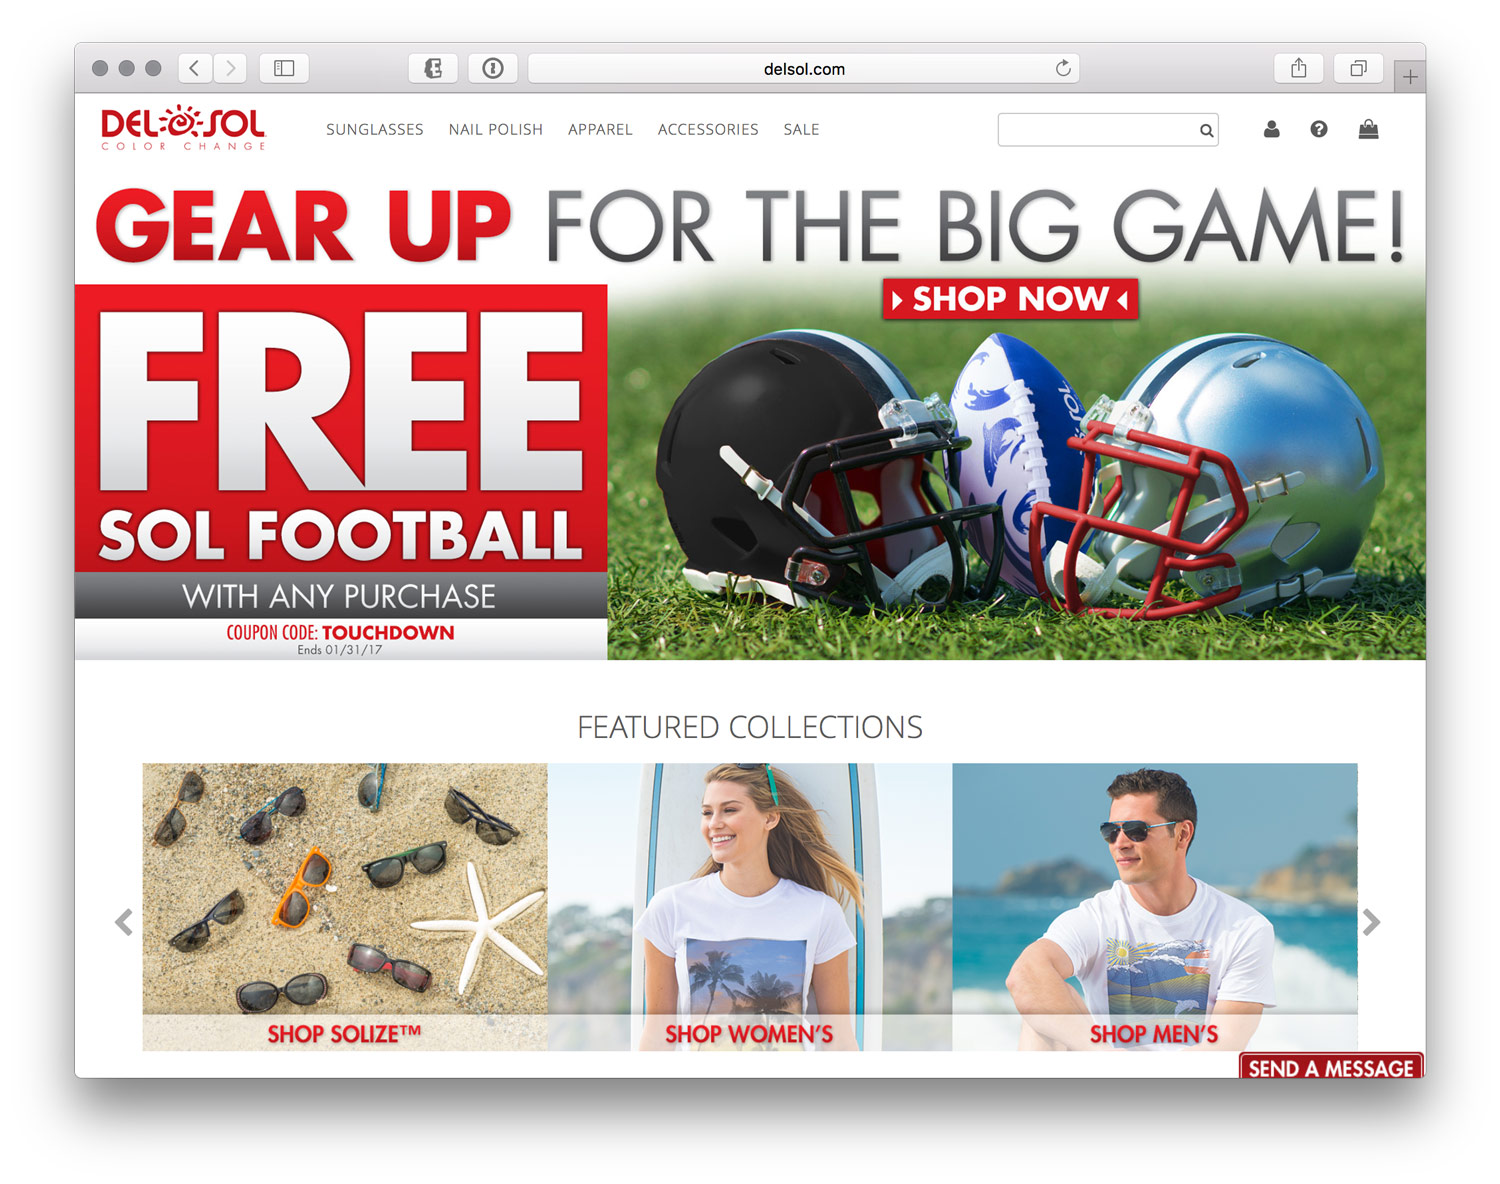 Home Page Slider to go along with Email Campaign for the Big Game 2017.